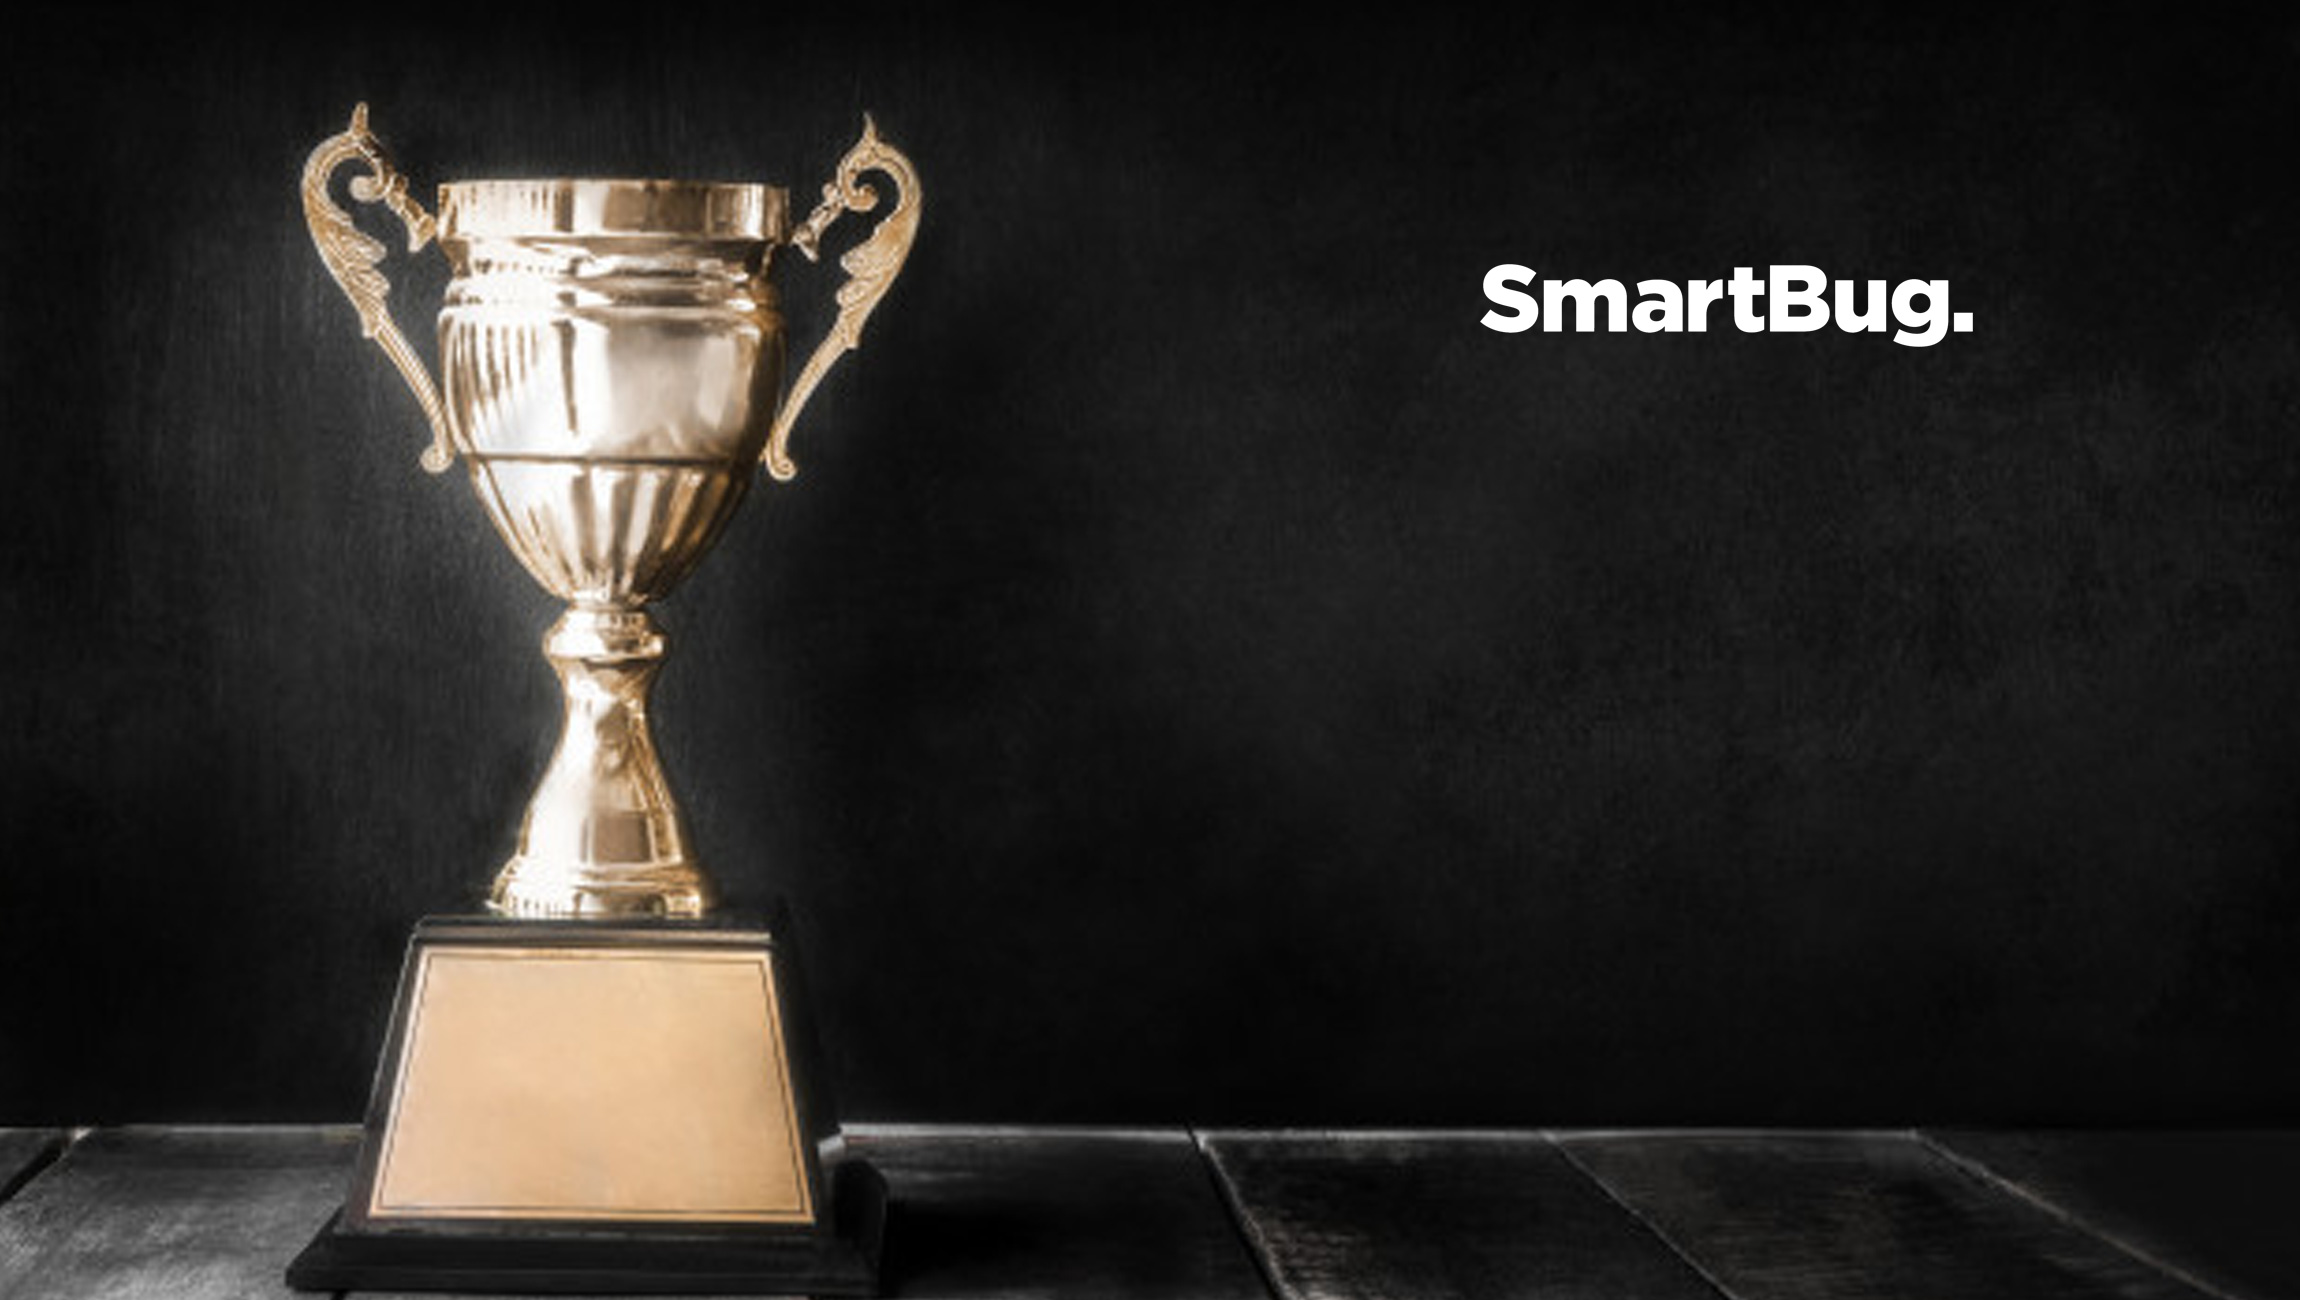 SmartBug Media Adds Industry Leader, Jennifer Shore, to Its Award-Winning Team as Director of Marketing and Demand Generation